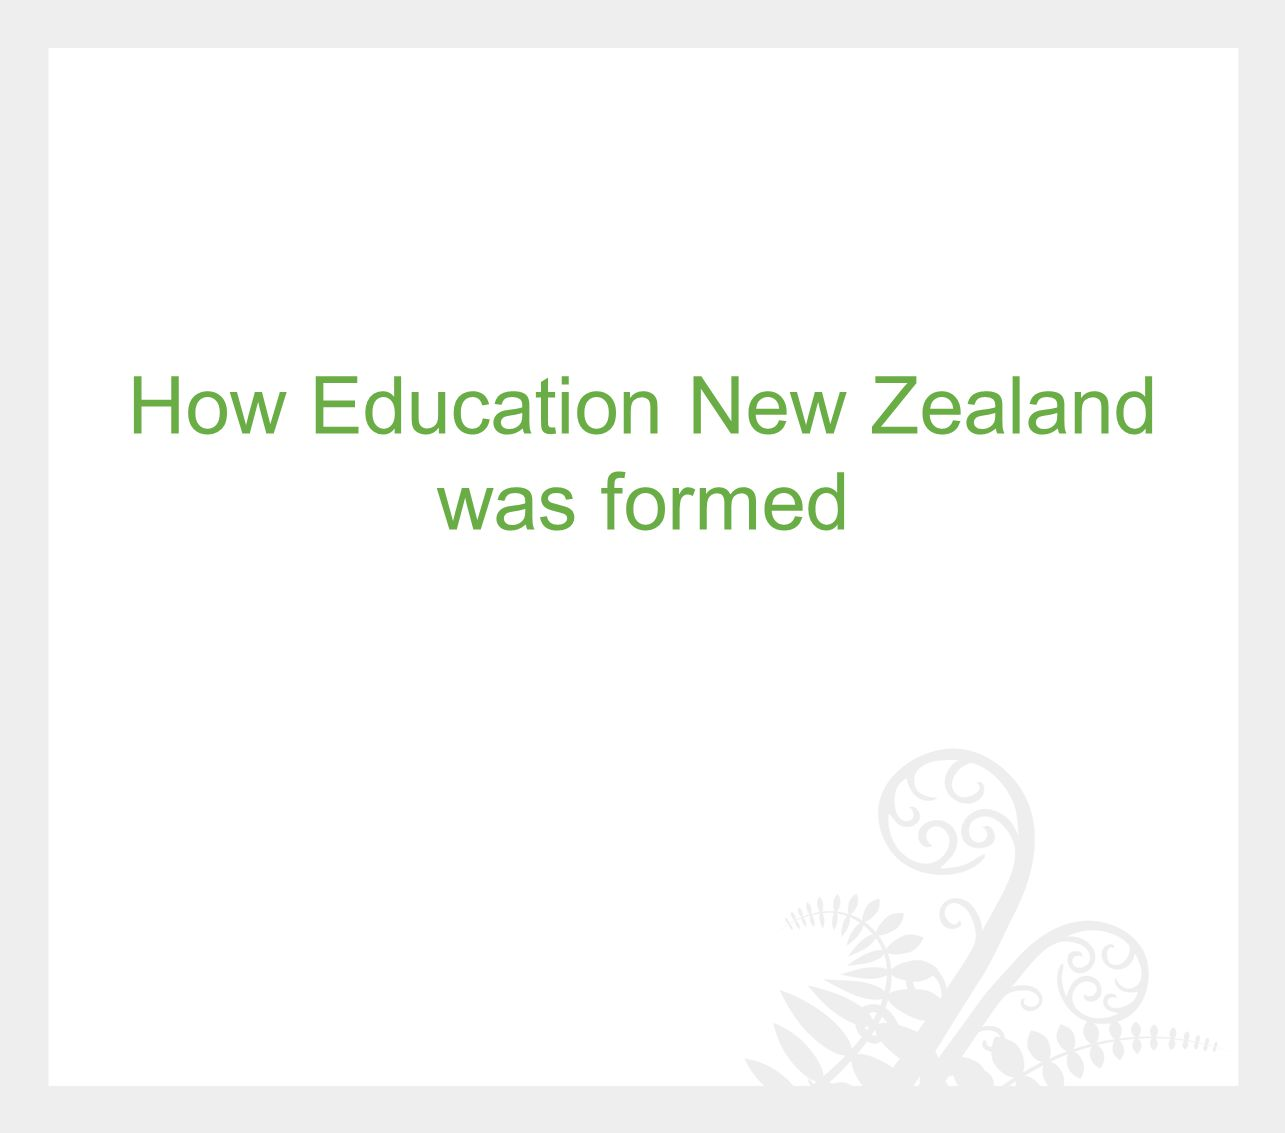 How Education New Zealand was formed